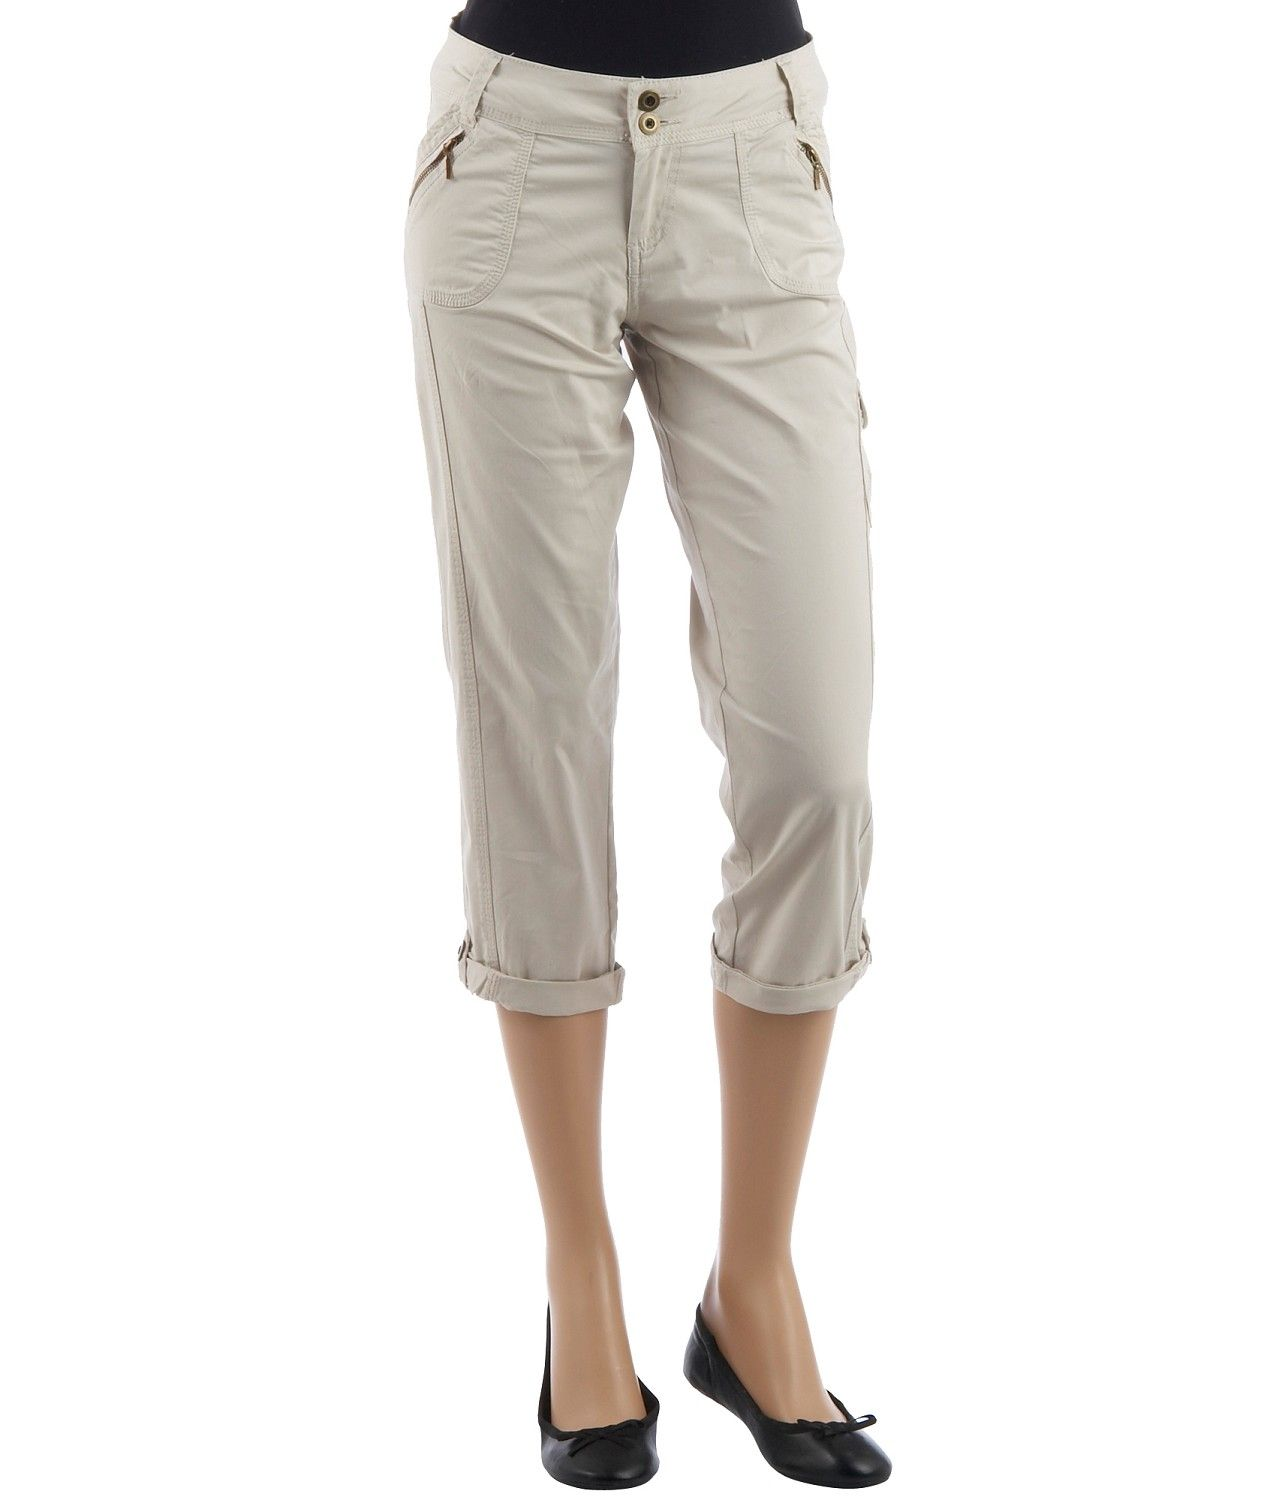 Capri Pants for Women | Buy Pantalons woman's - Women's capri ...